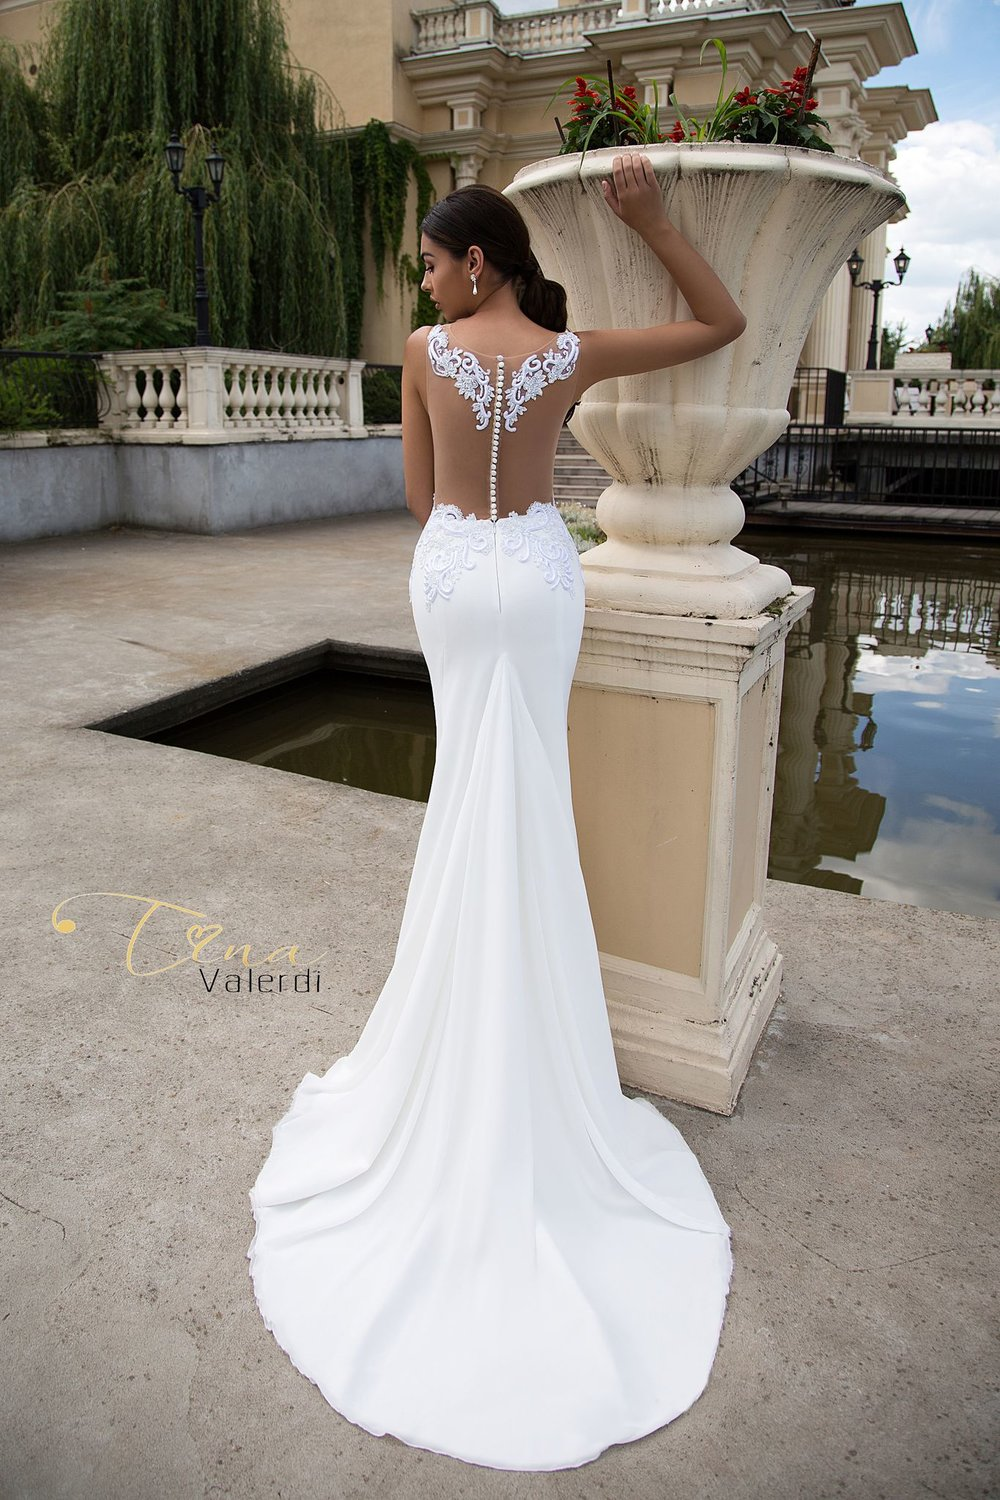 MILANA DRESS BY TINA VALERDI